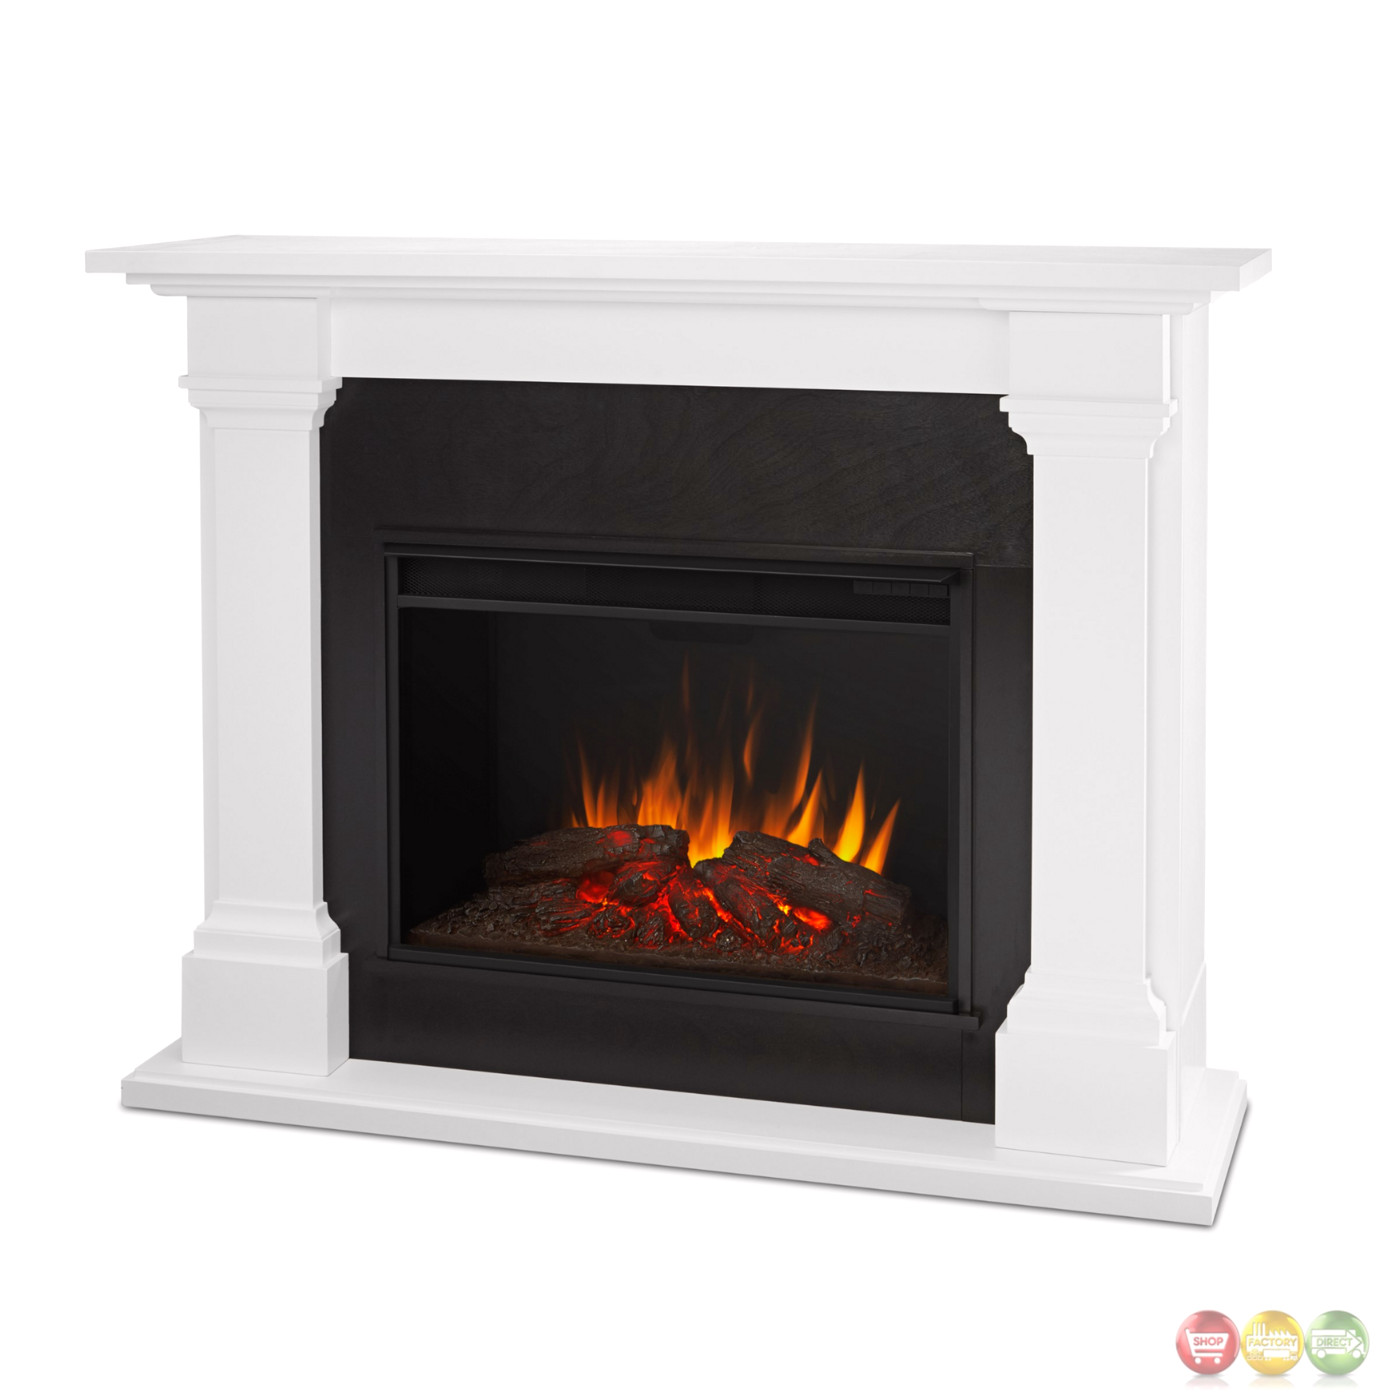 Callaway Grand Vivid Led Electric Fireplace In White 5100btu 63x48